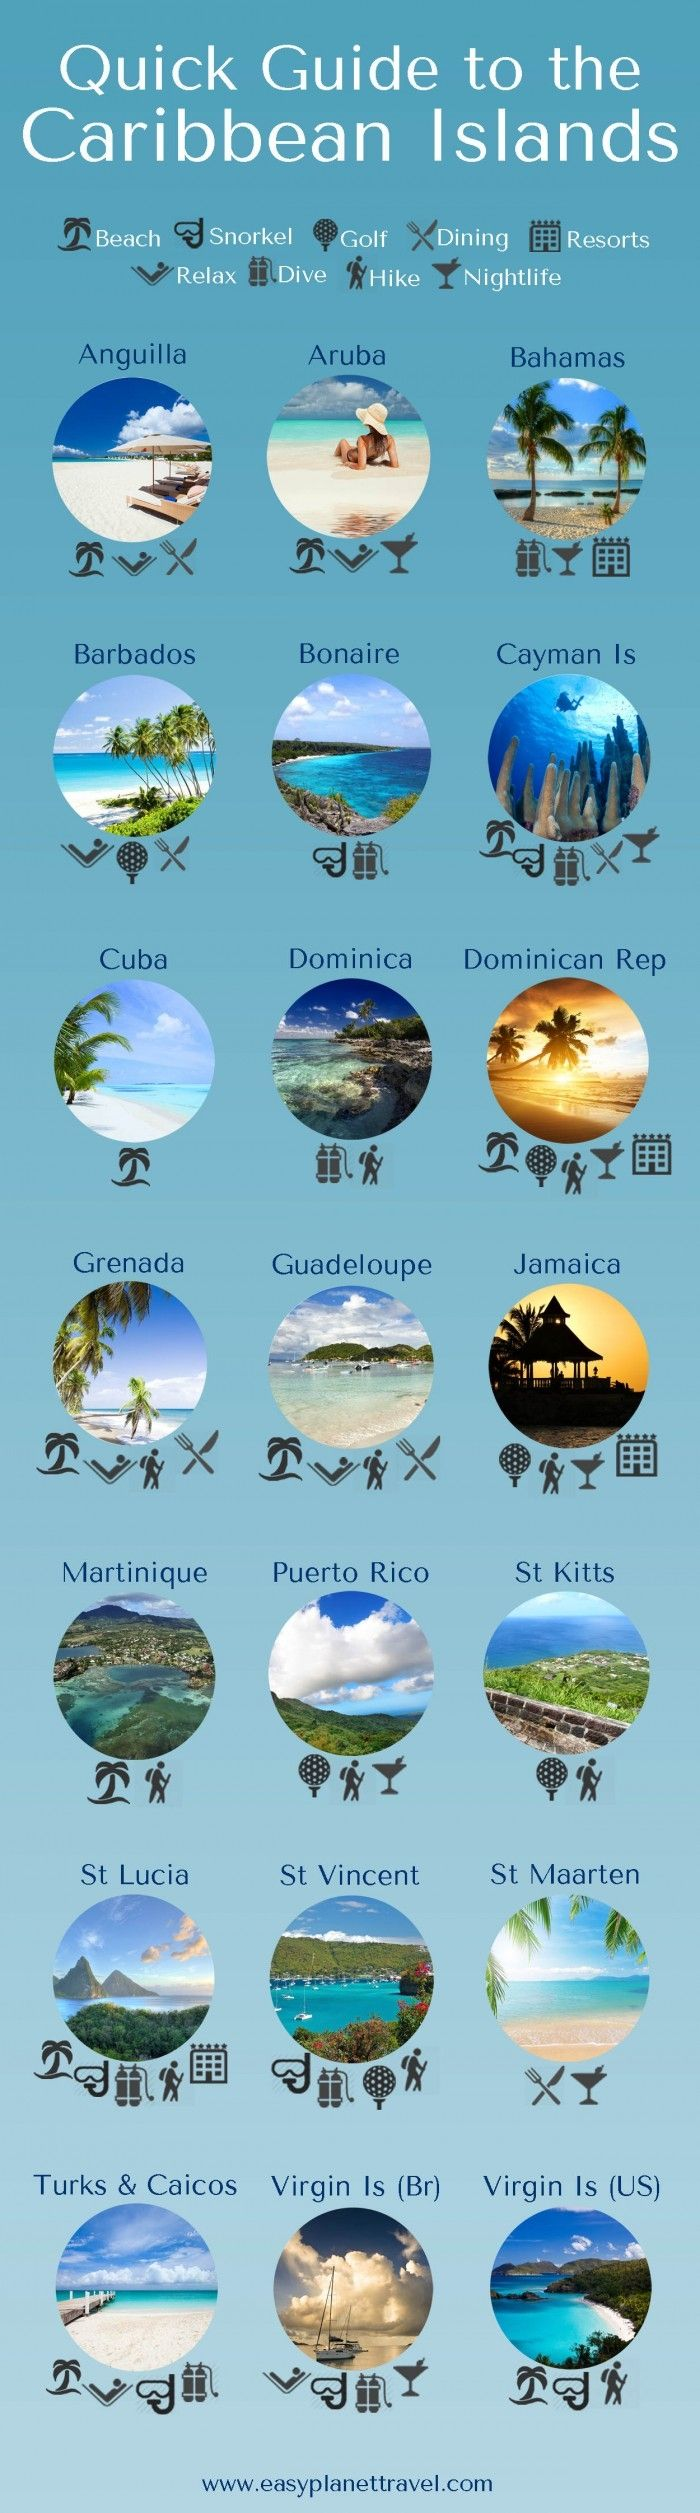 Easy Planet Travel – Quick and Easy Guide to the Caribbean Islands